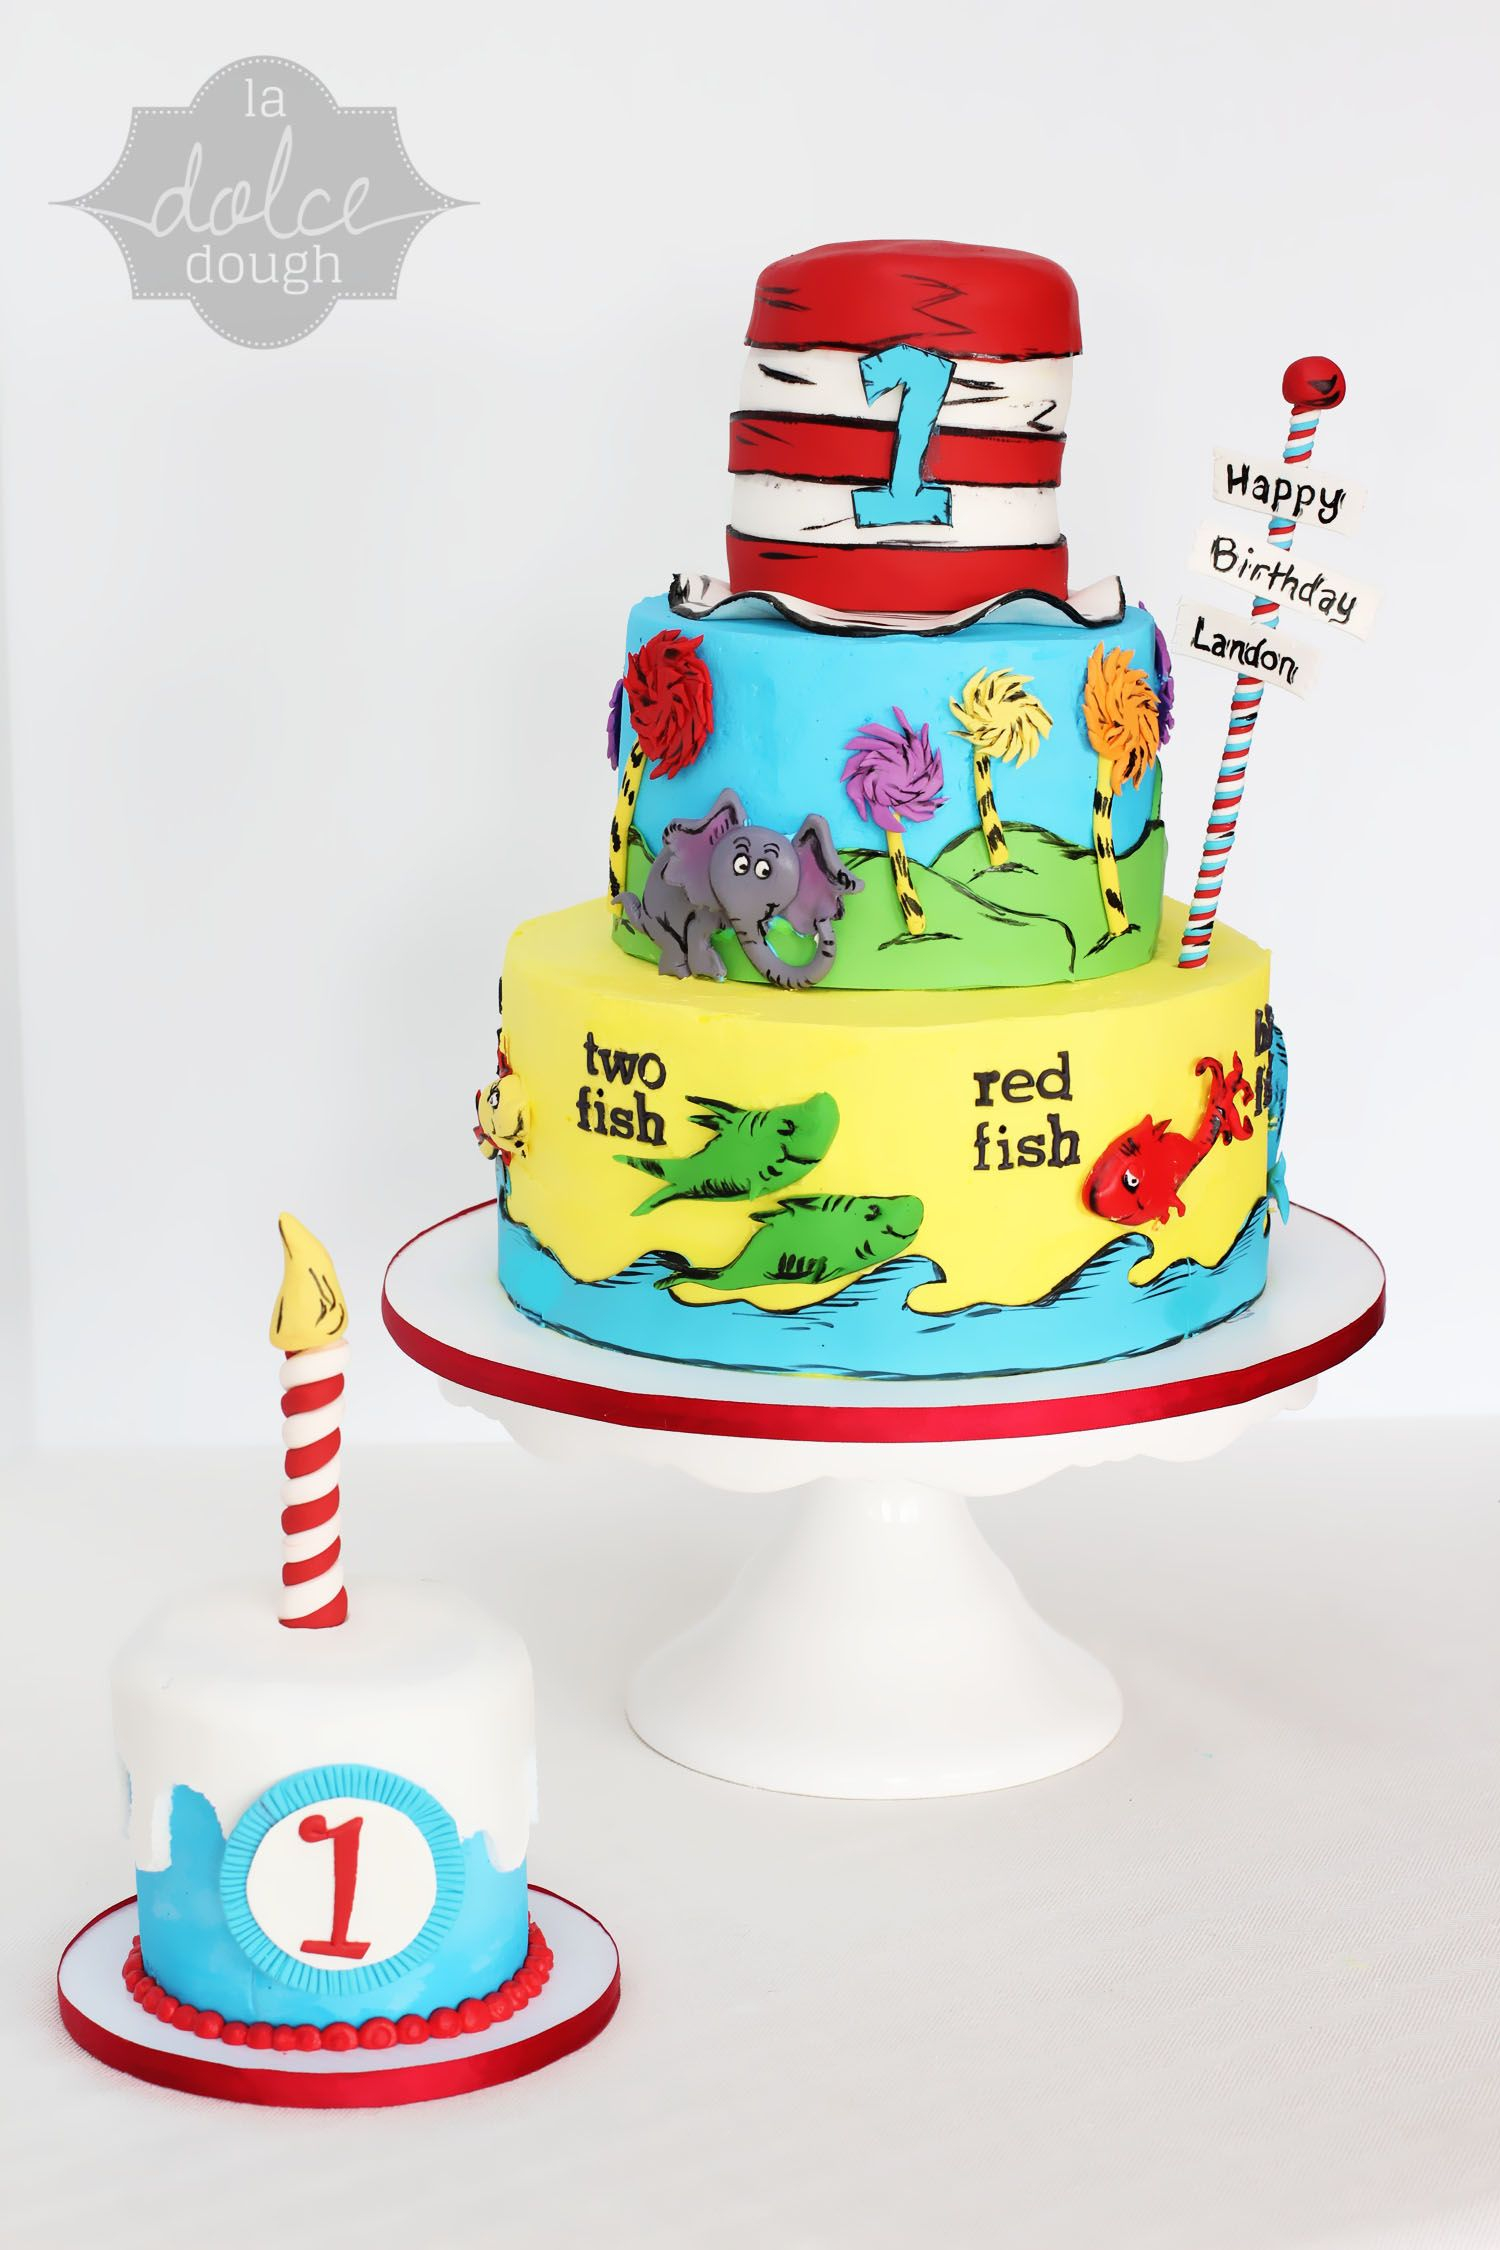 Dr Seuss Birthday Cakes Dr Seuss 1st Birthday Cake And Smash Cake La Dolce Dough